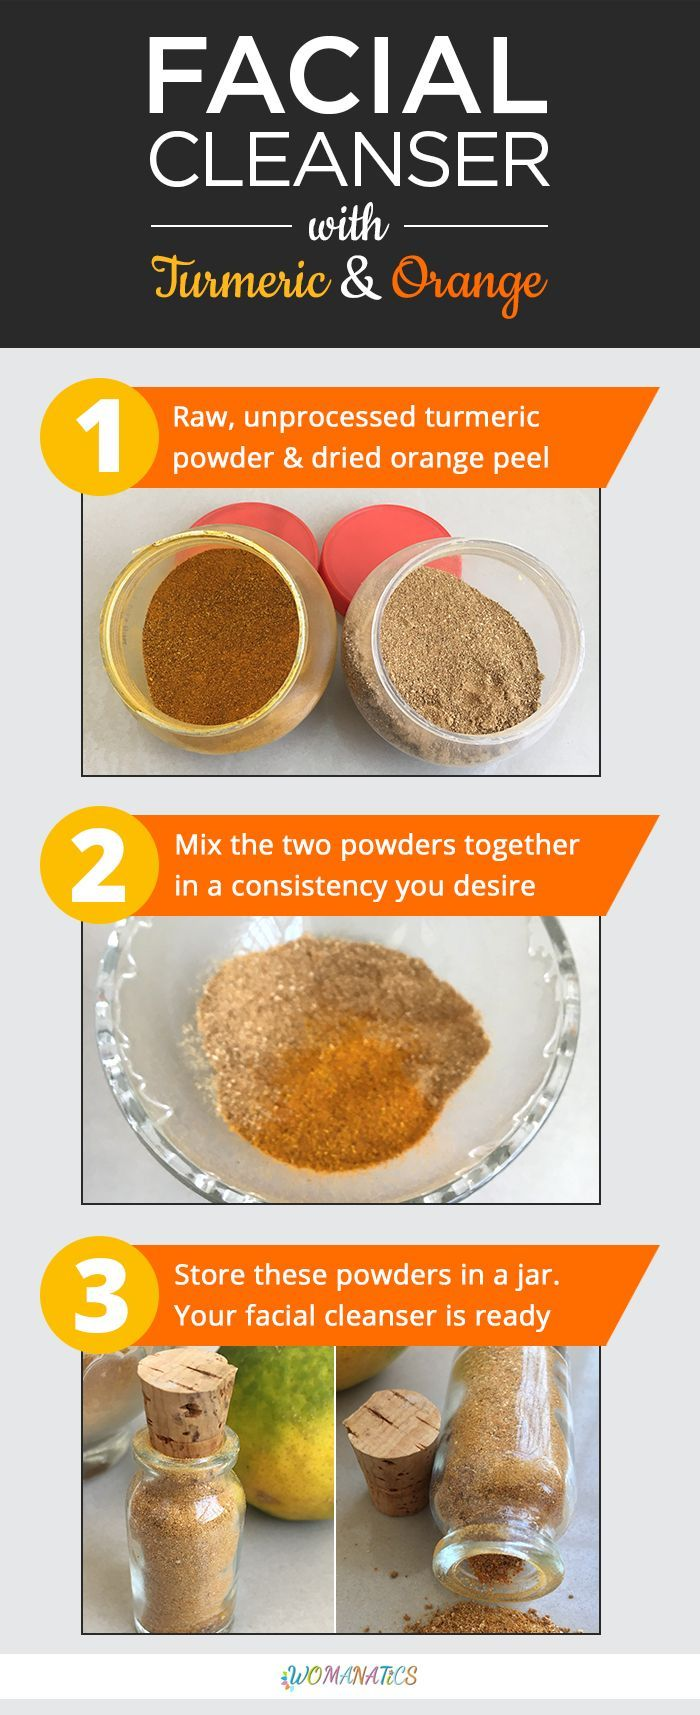 DIY Turmeric Orange Facial Cleanser is a natural face cleansing powder that is made from orange peel and raw turmeric powder. It is a herbal, fresh, pure and natural facial cleanser powder that deeply cleanses the skin without stripping it off its natural oils.  #Turmeric #Facial #Natural